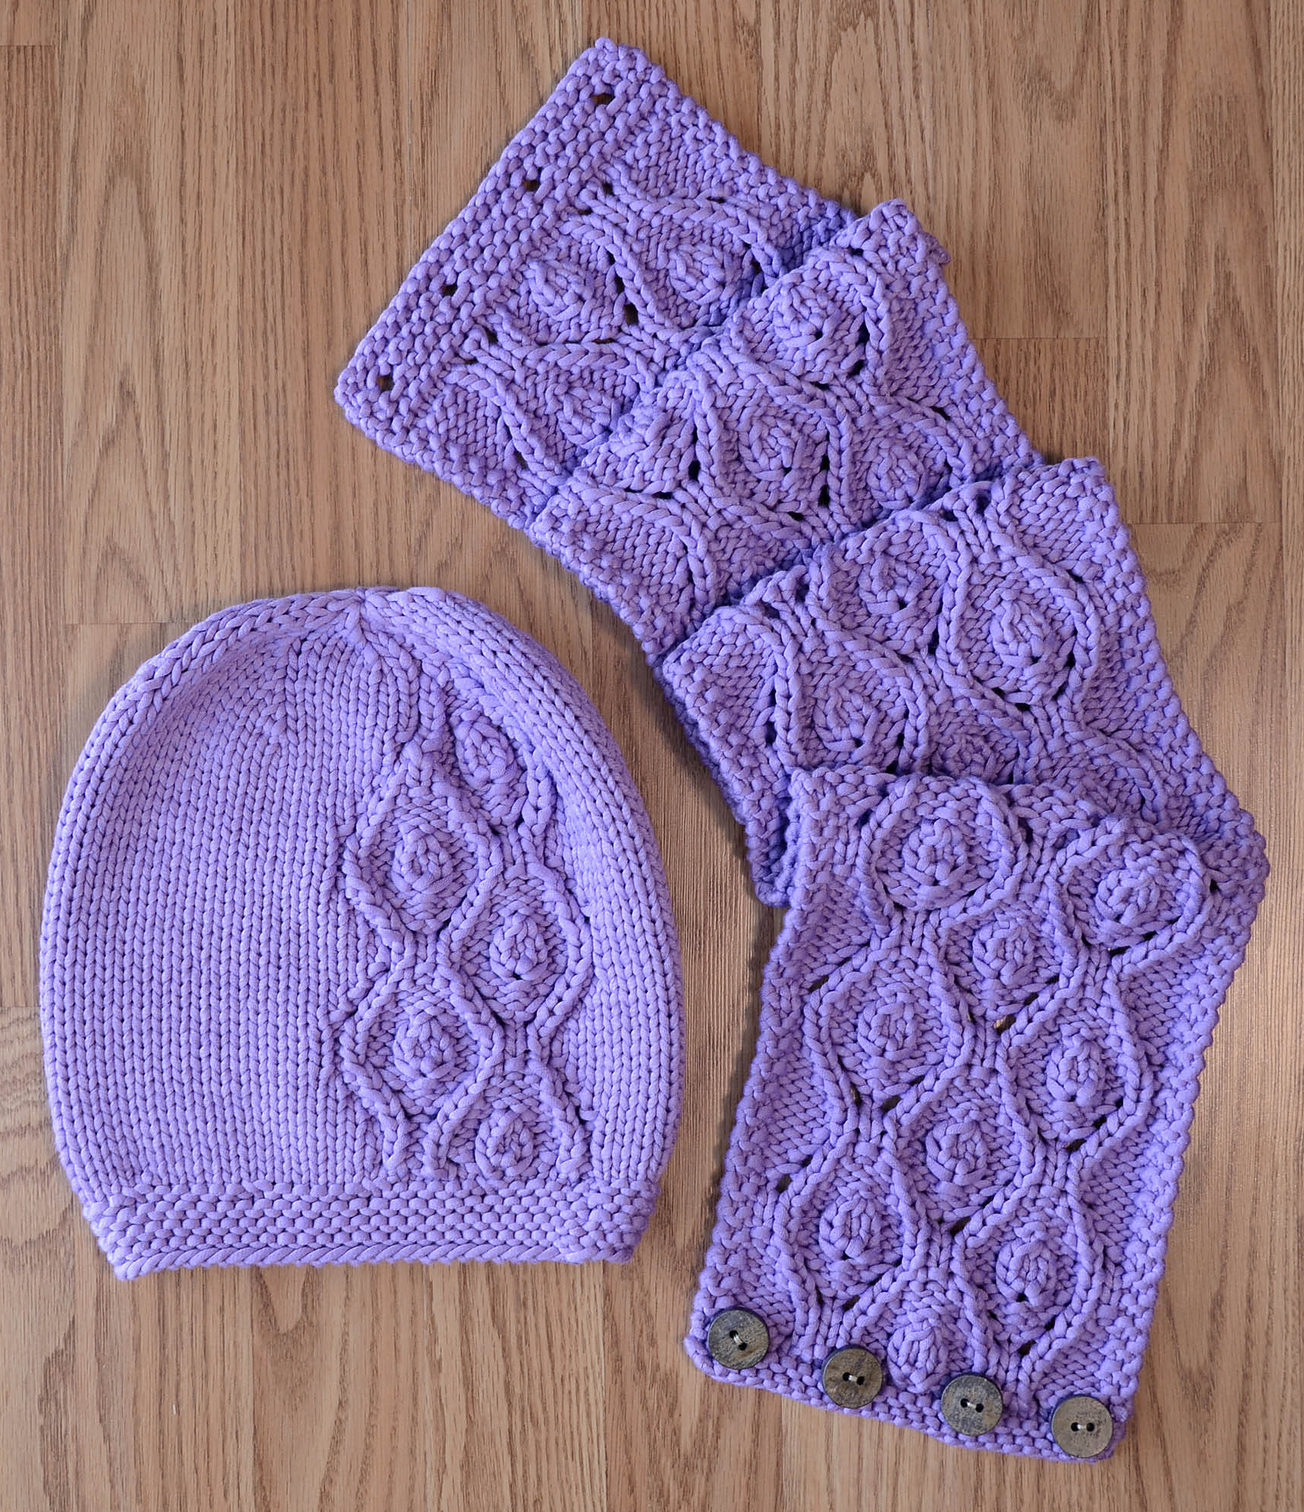 Hat, Scarf, and Mitt Sets Knitting Patterns - In the Loop